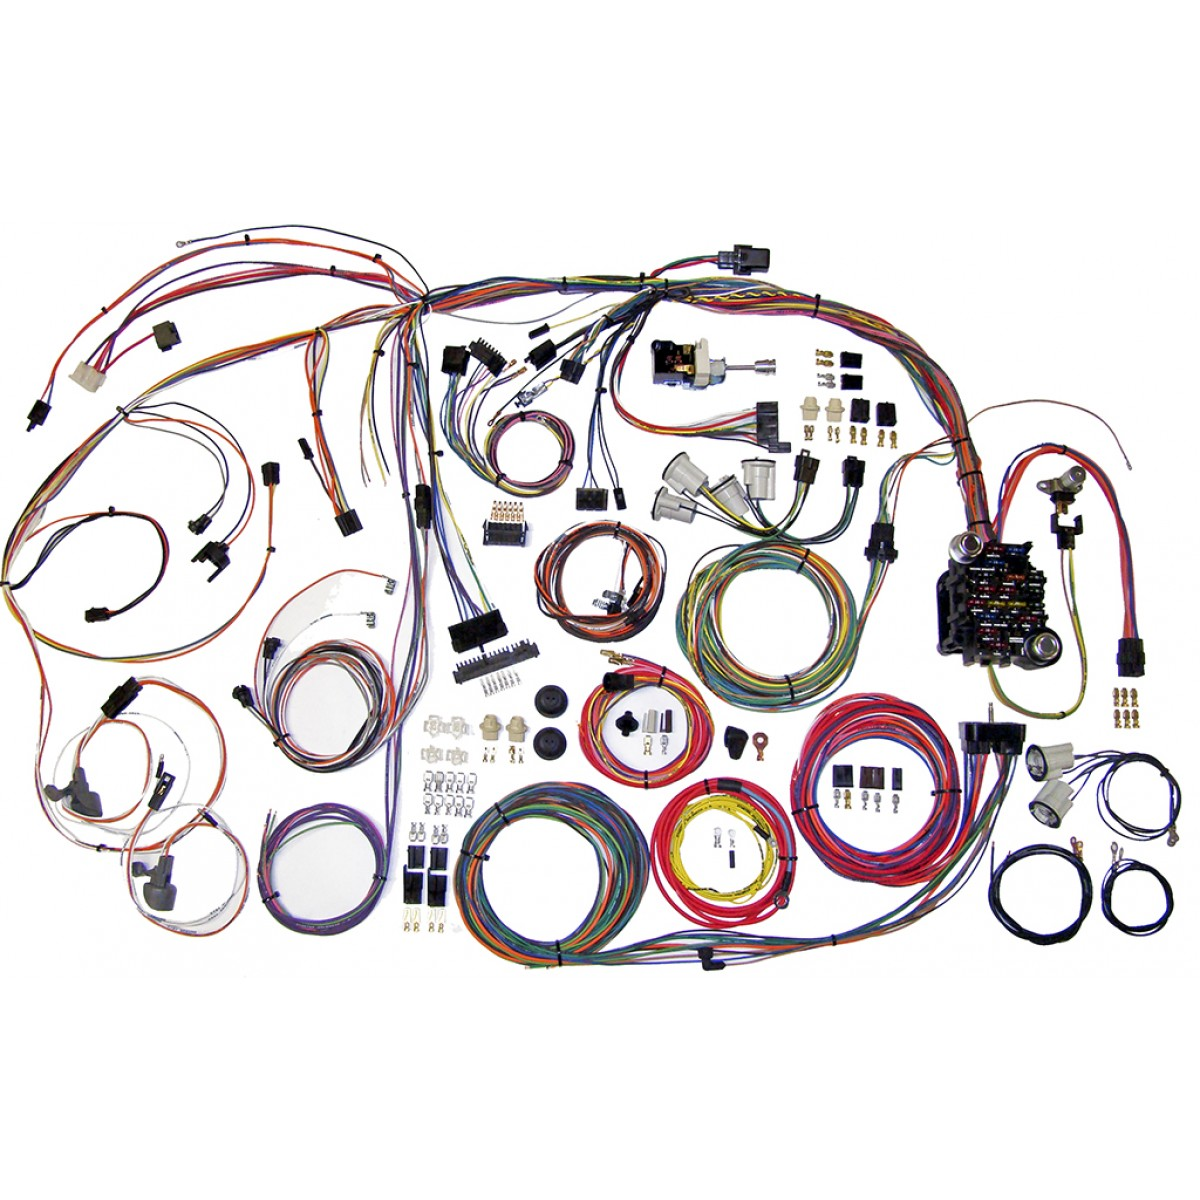 Complete Wiring Harness Kit - 1970-1972 El Camino Part# 510105